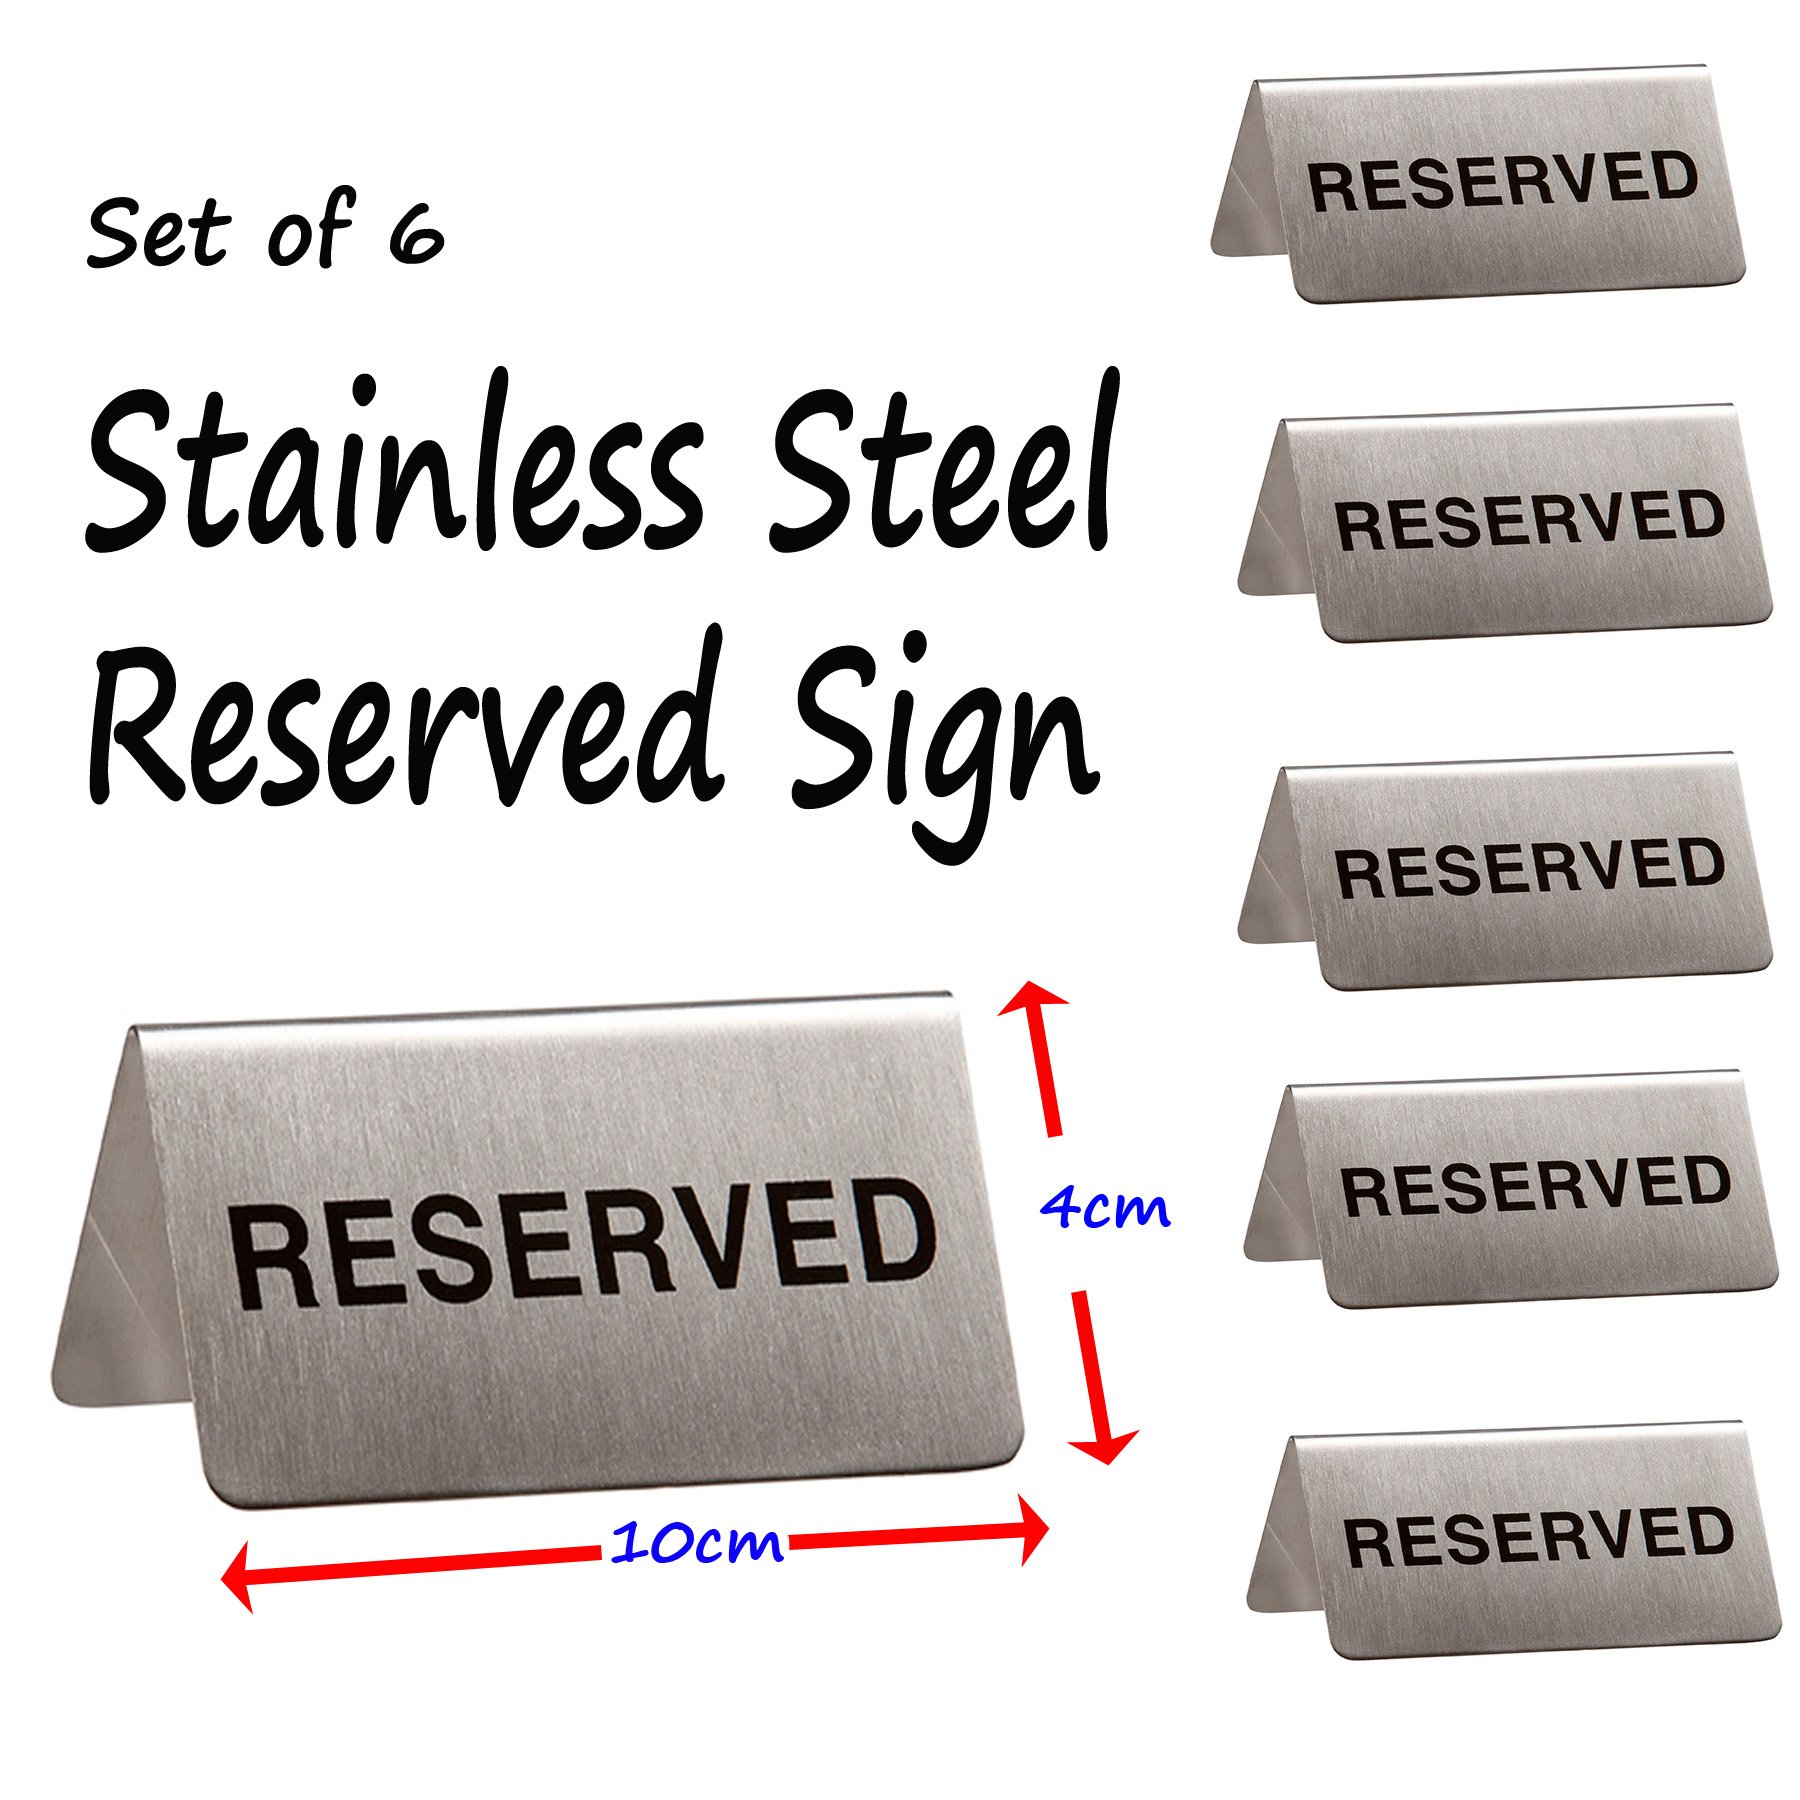 Stainless Steel Reserved Table Sign: Reserved Booking Table Sign Stainless Steel